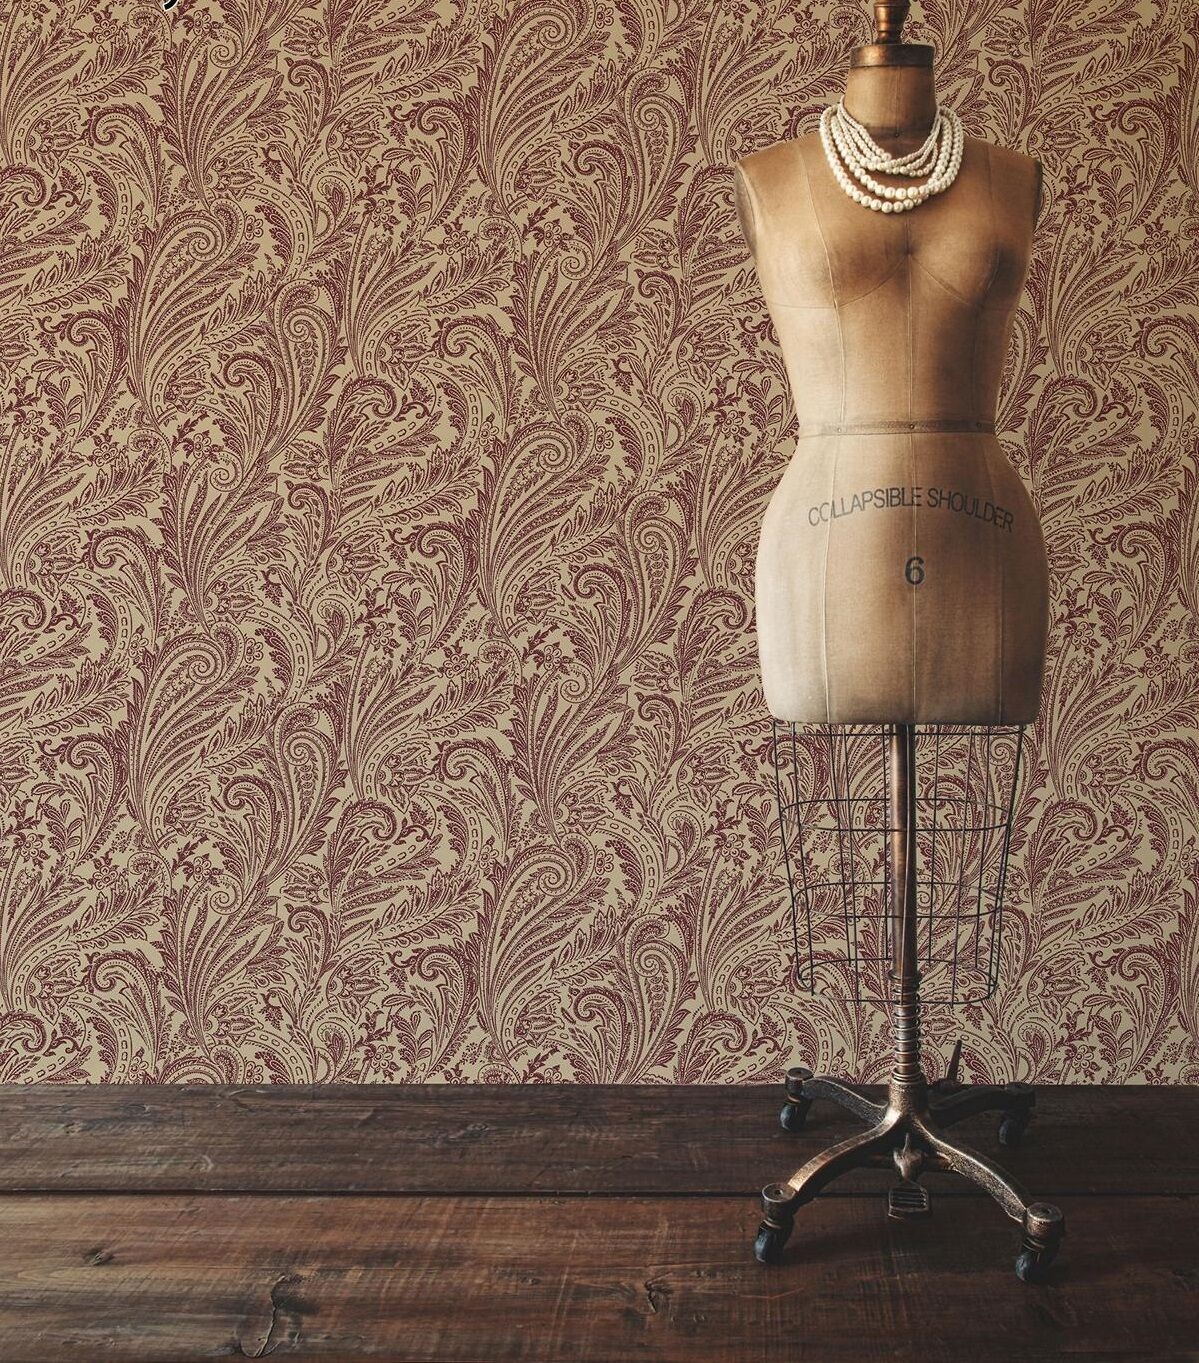 baroque-inspired wallpaper, featuring dark red patterns, on a cream background, vintage dress-makers dummy and wooden floor